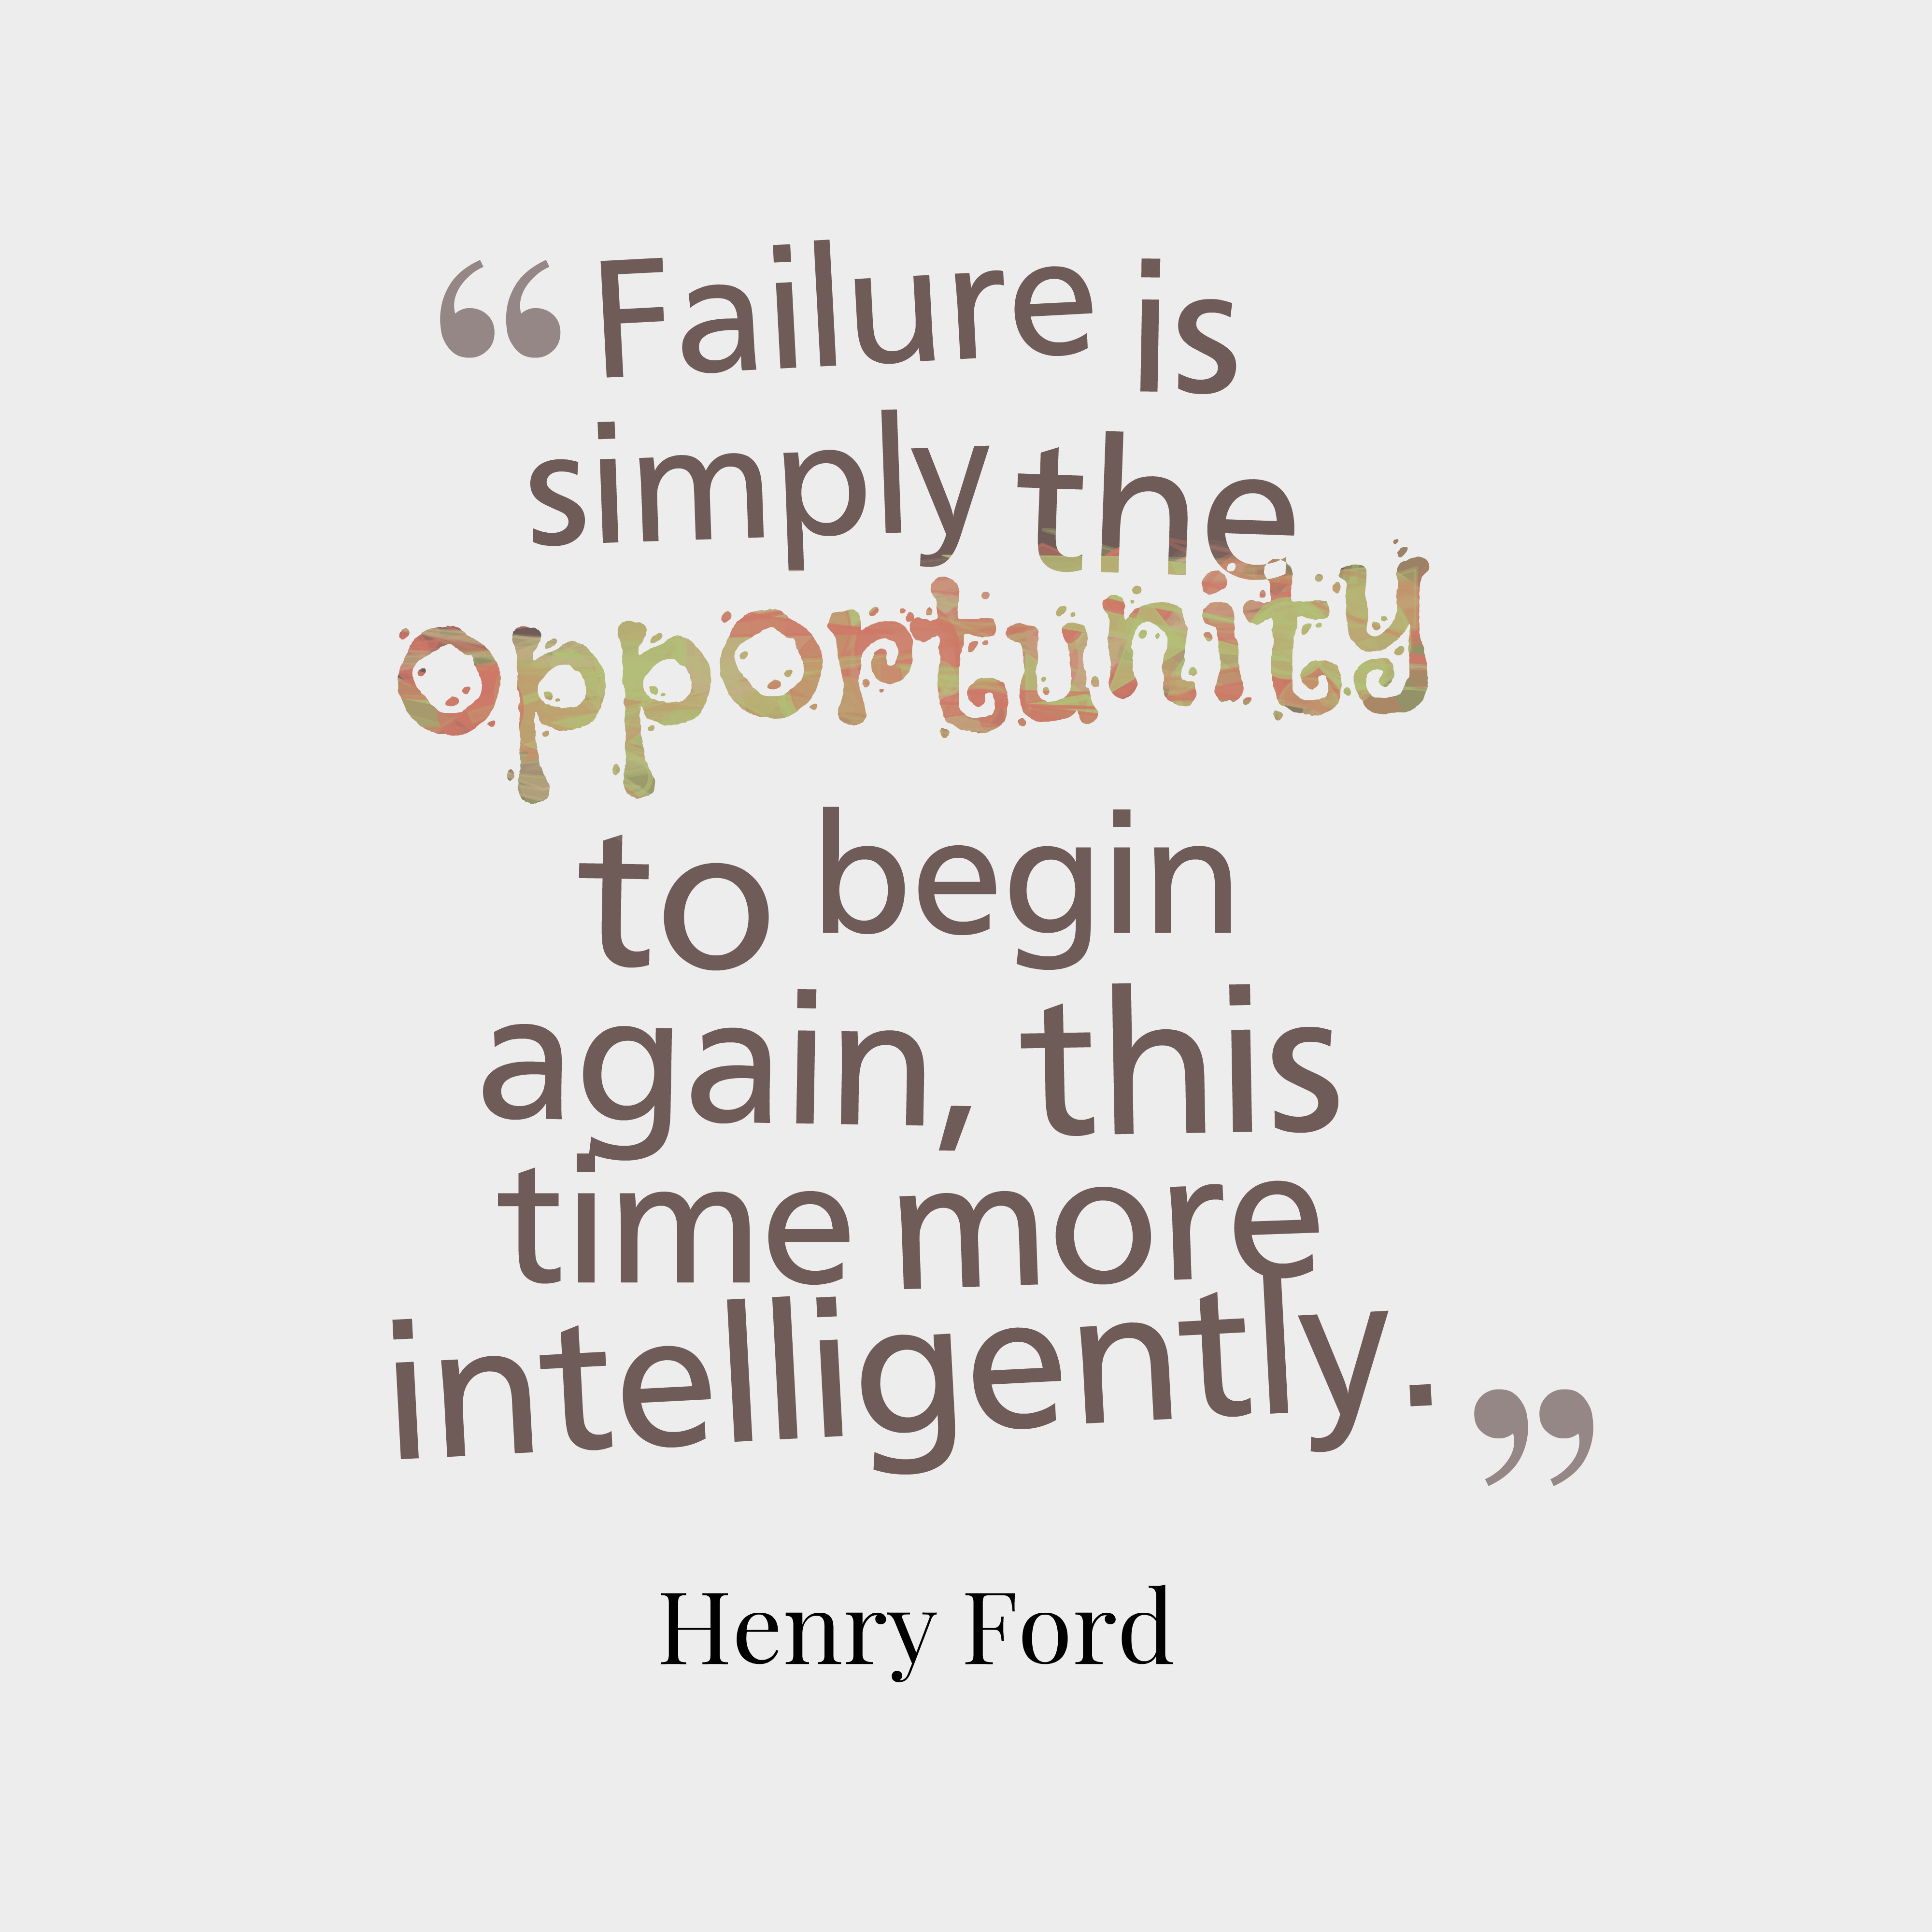 Quotes image of Failure is simply the opportunity to begin again, this time more intelligently.